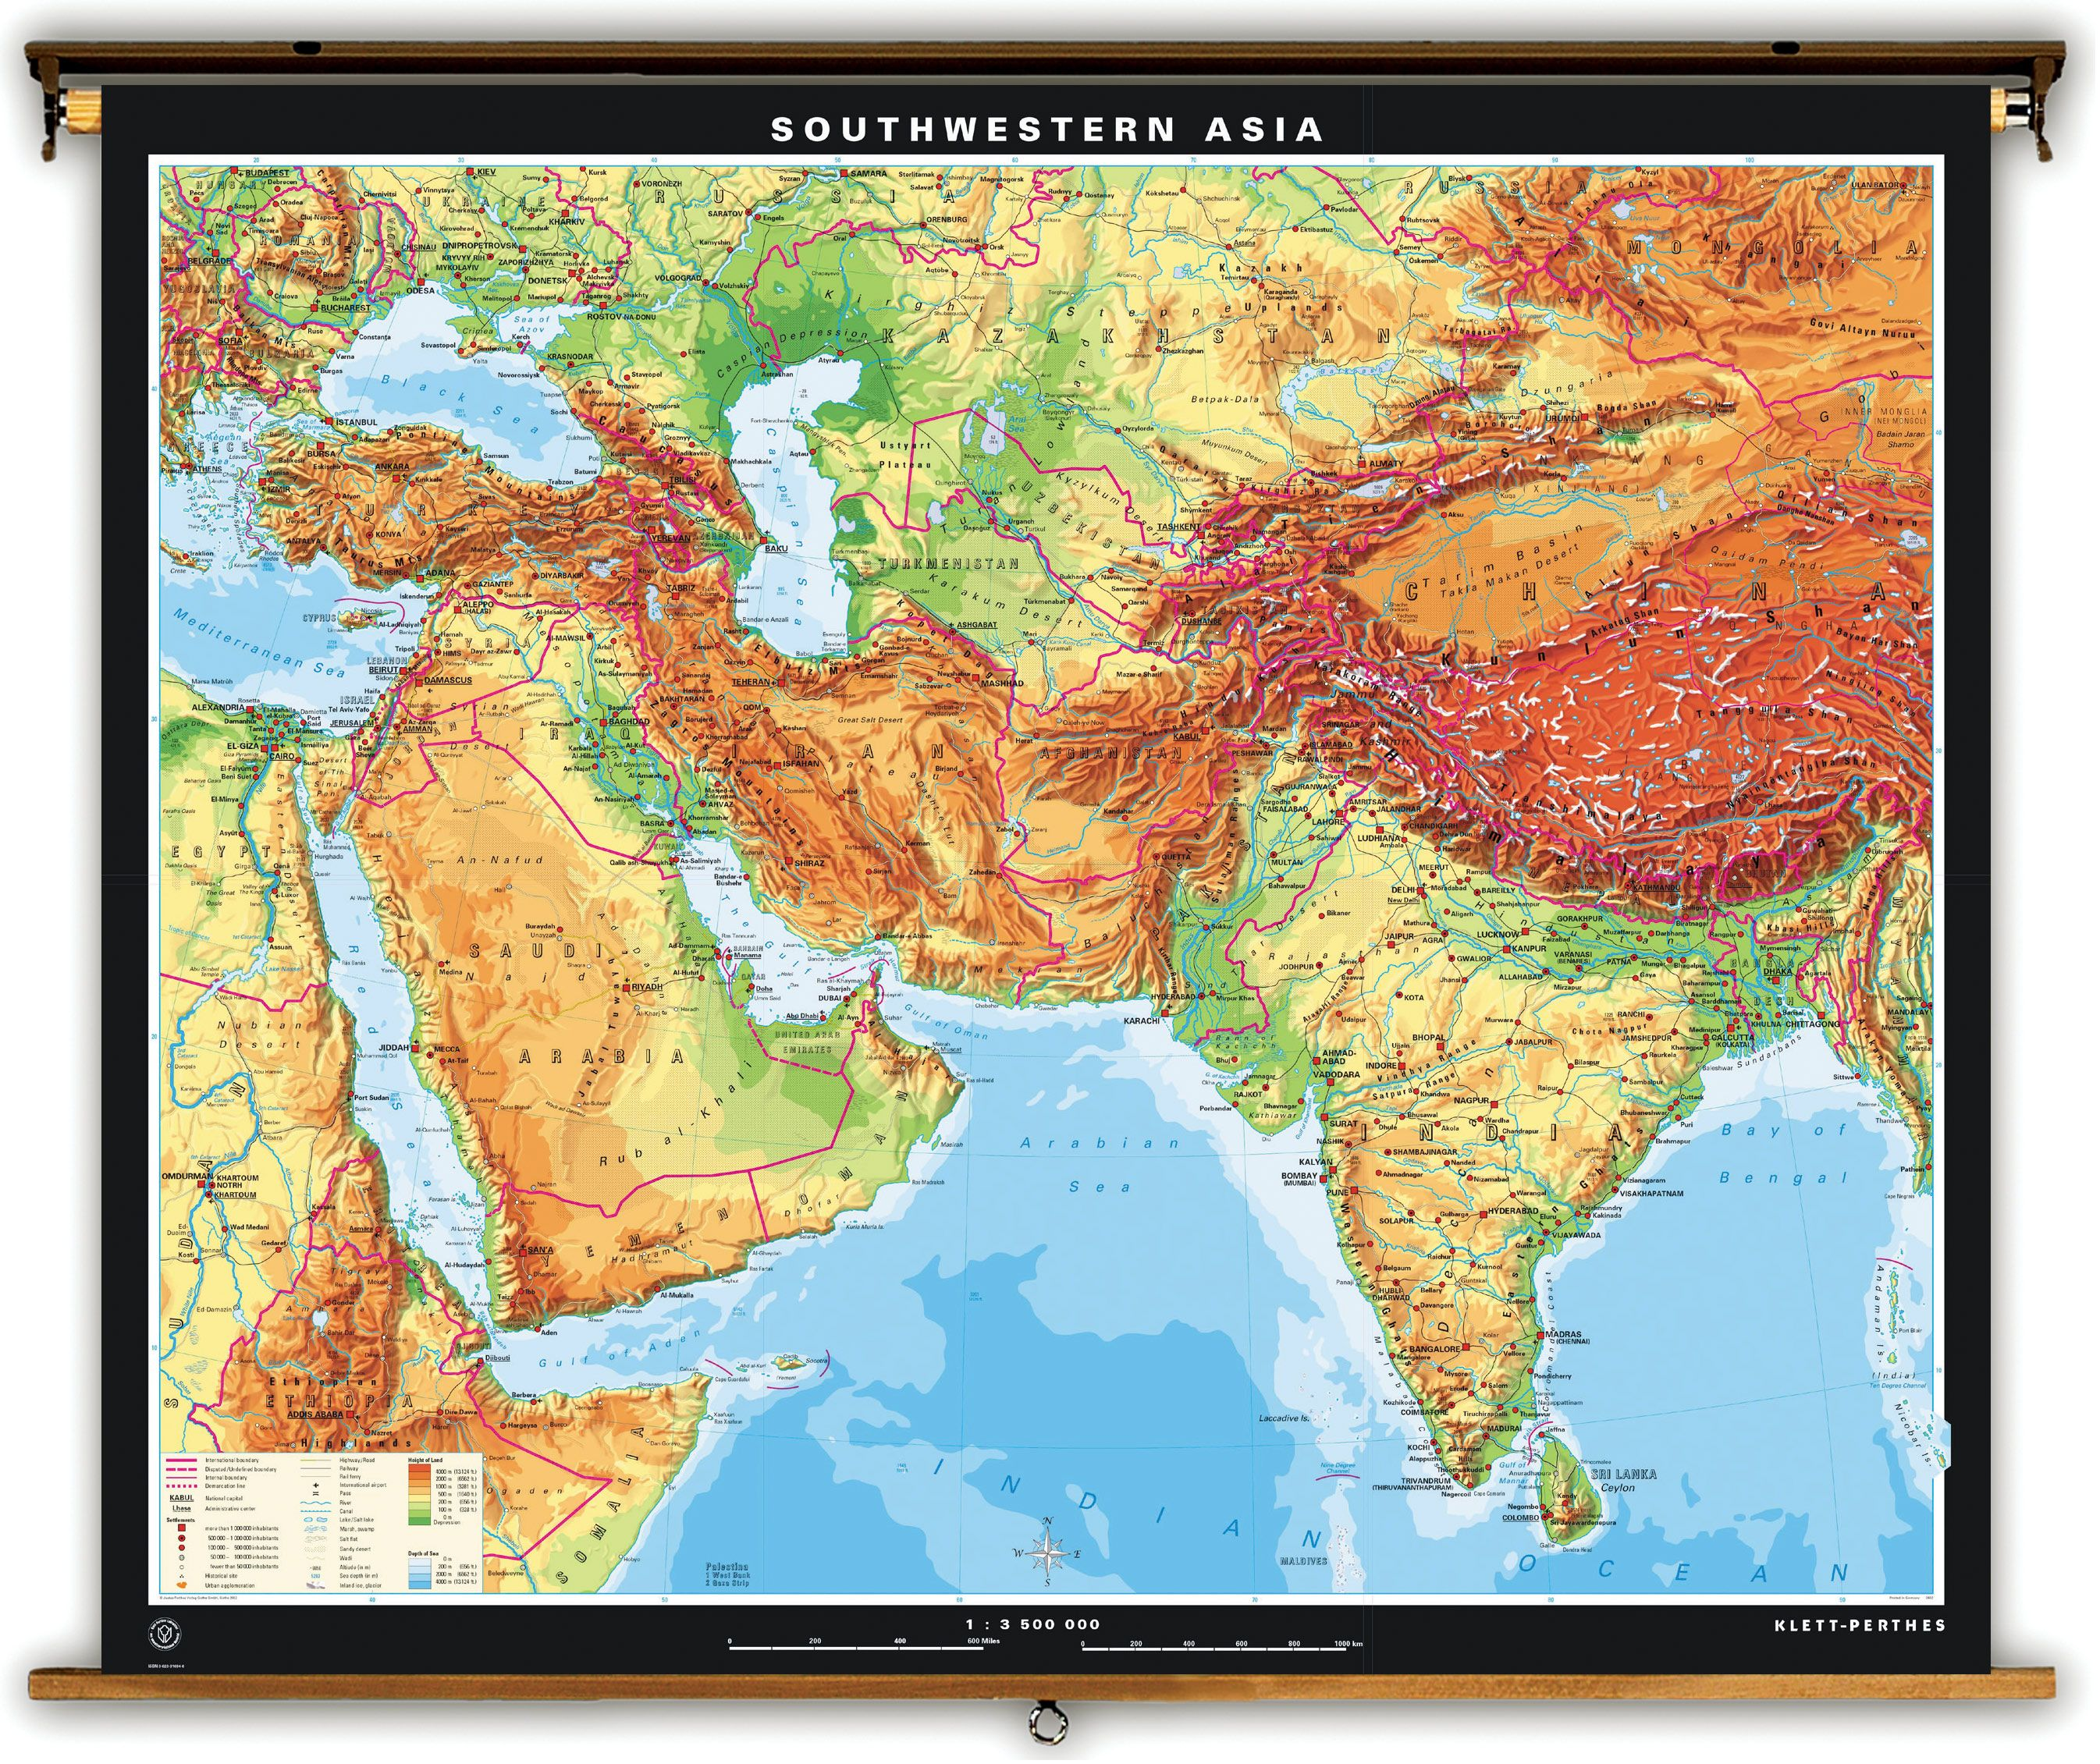 physical geography map of southwest asia Google Search – Asia Geography Map